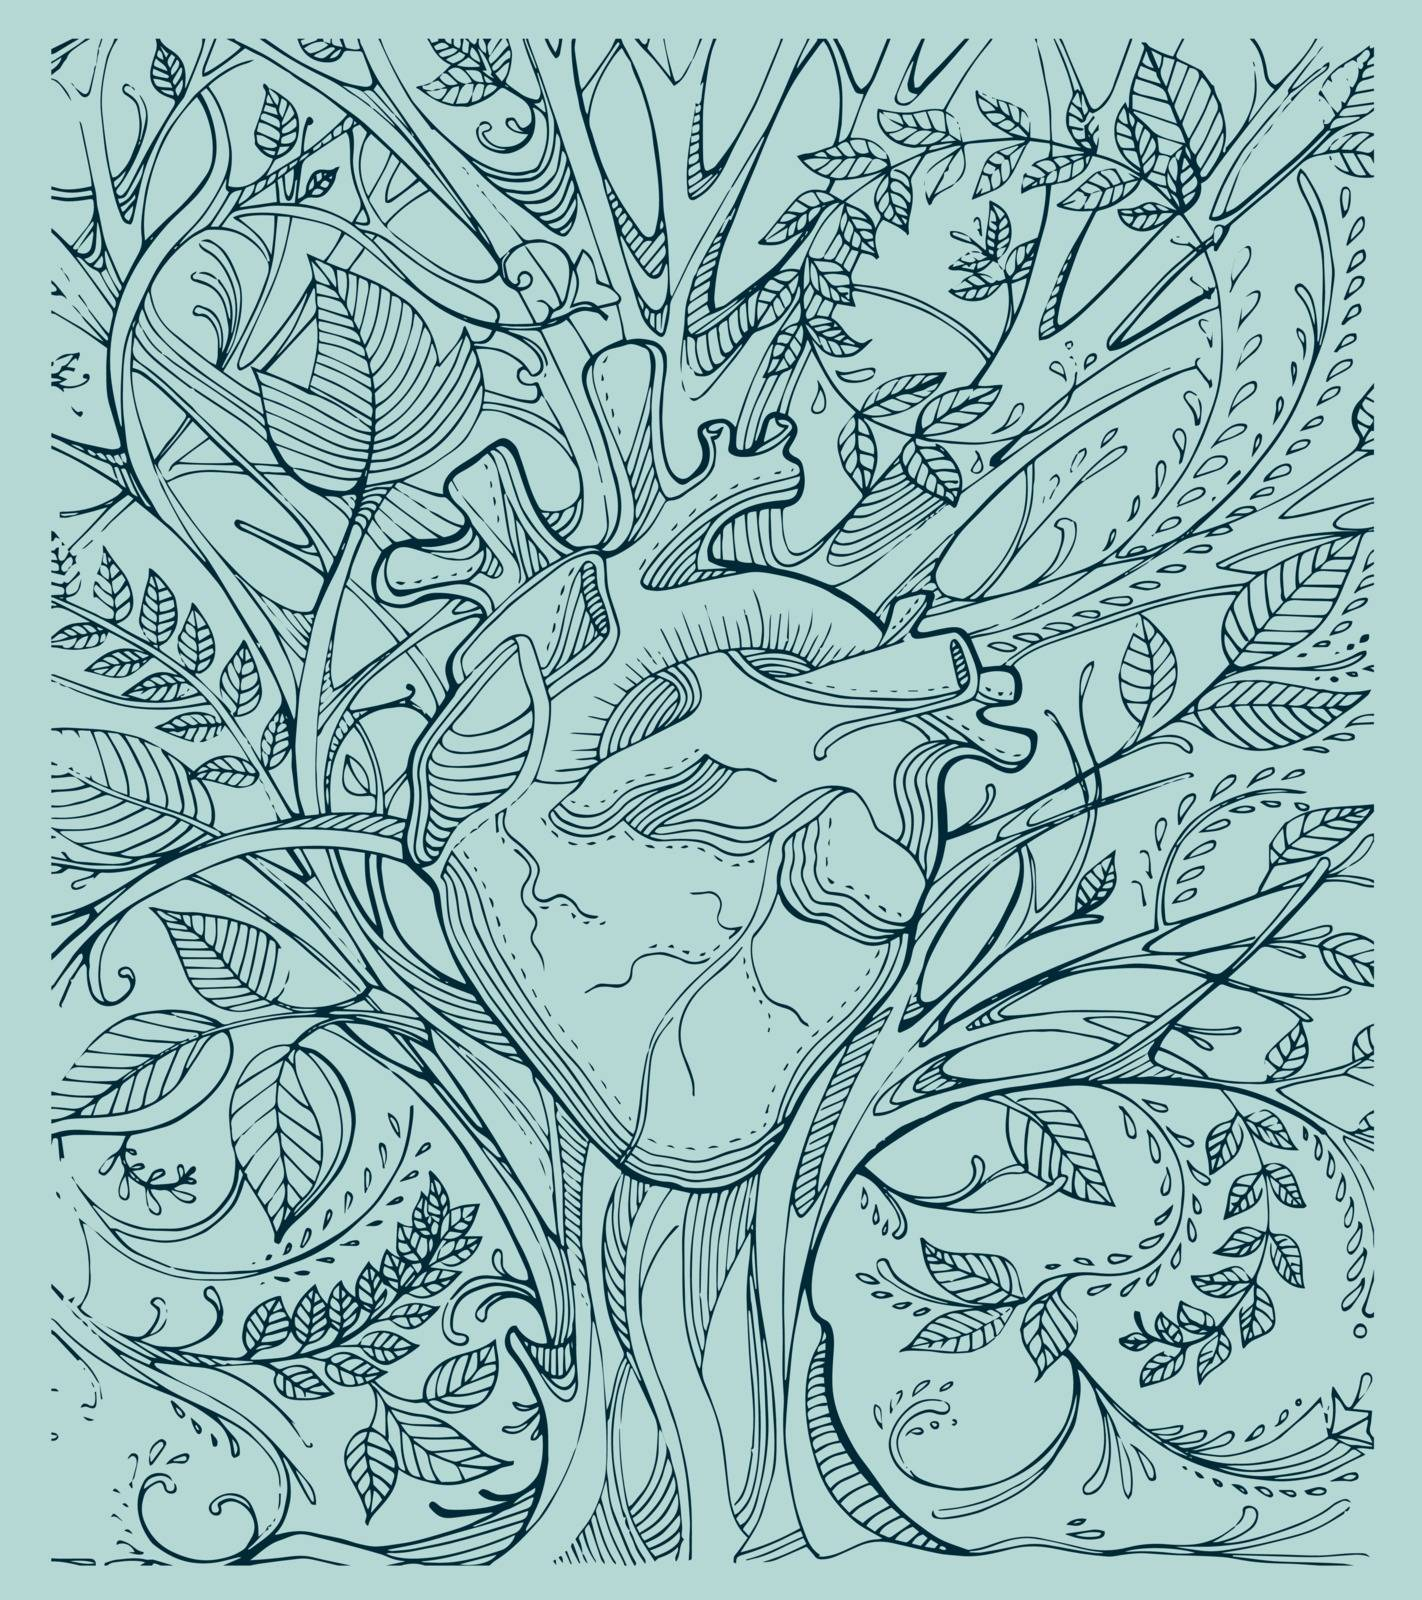 Hand drawn illustration or drawing of a human heart and a tree with a lot of branches and leafs